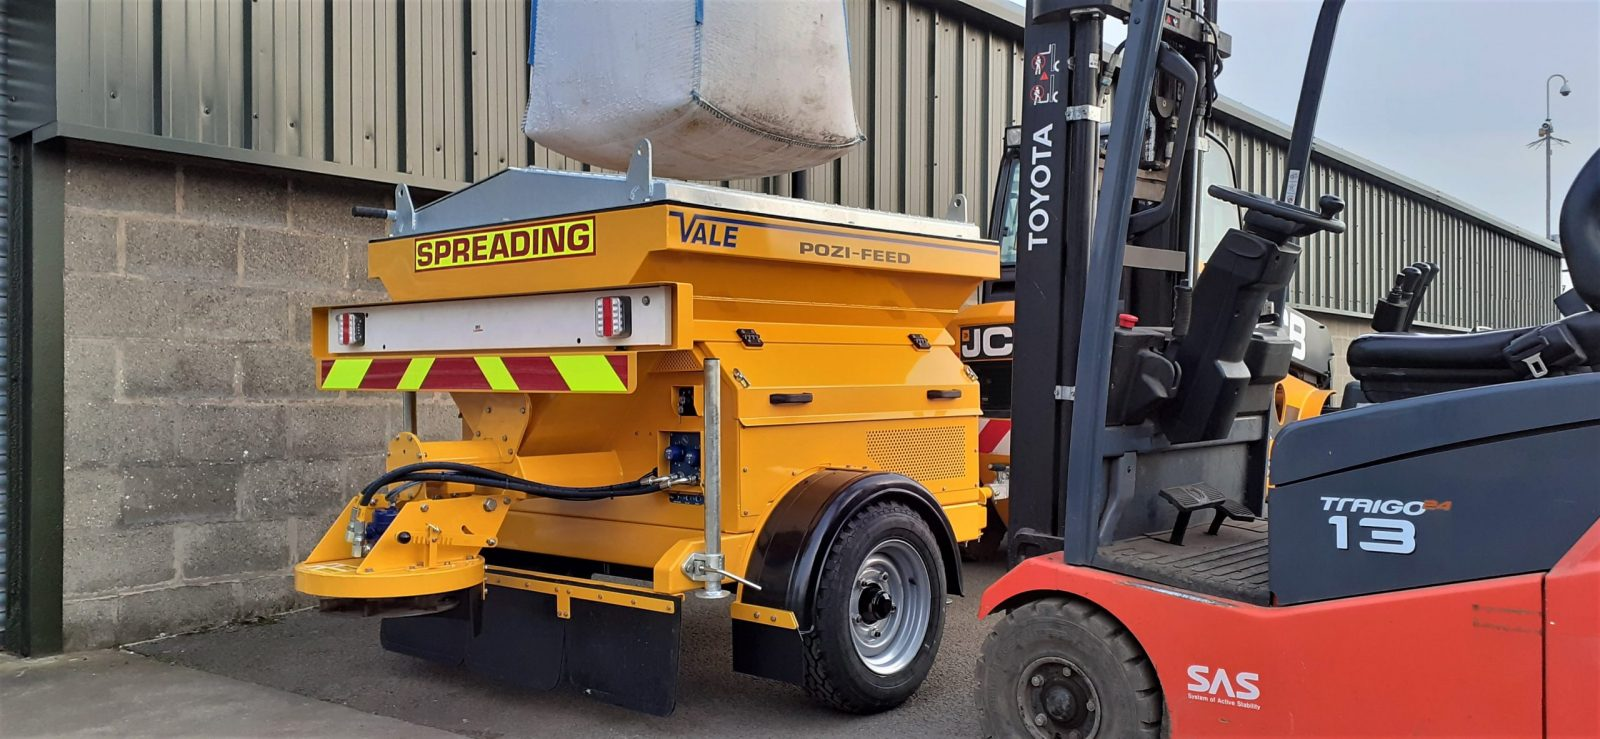 The hopper of the TS800DC Tug-Towed Salt Spreader is designed to take approximately 1000kg of salt, making it ideal for use with 1-ton bulk bags, which are easy and clean to store and make hopper filling simple and efficient.